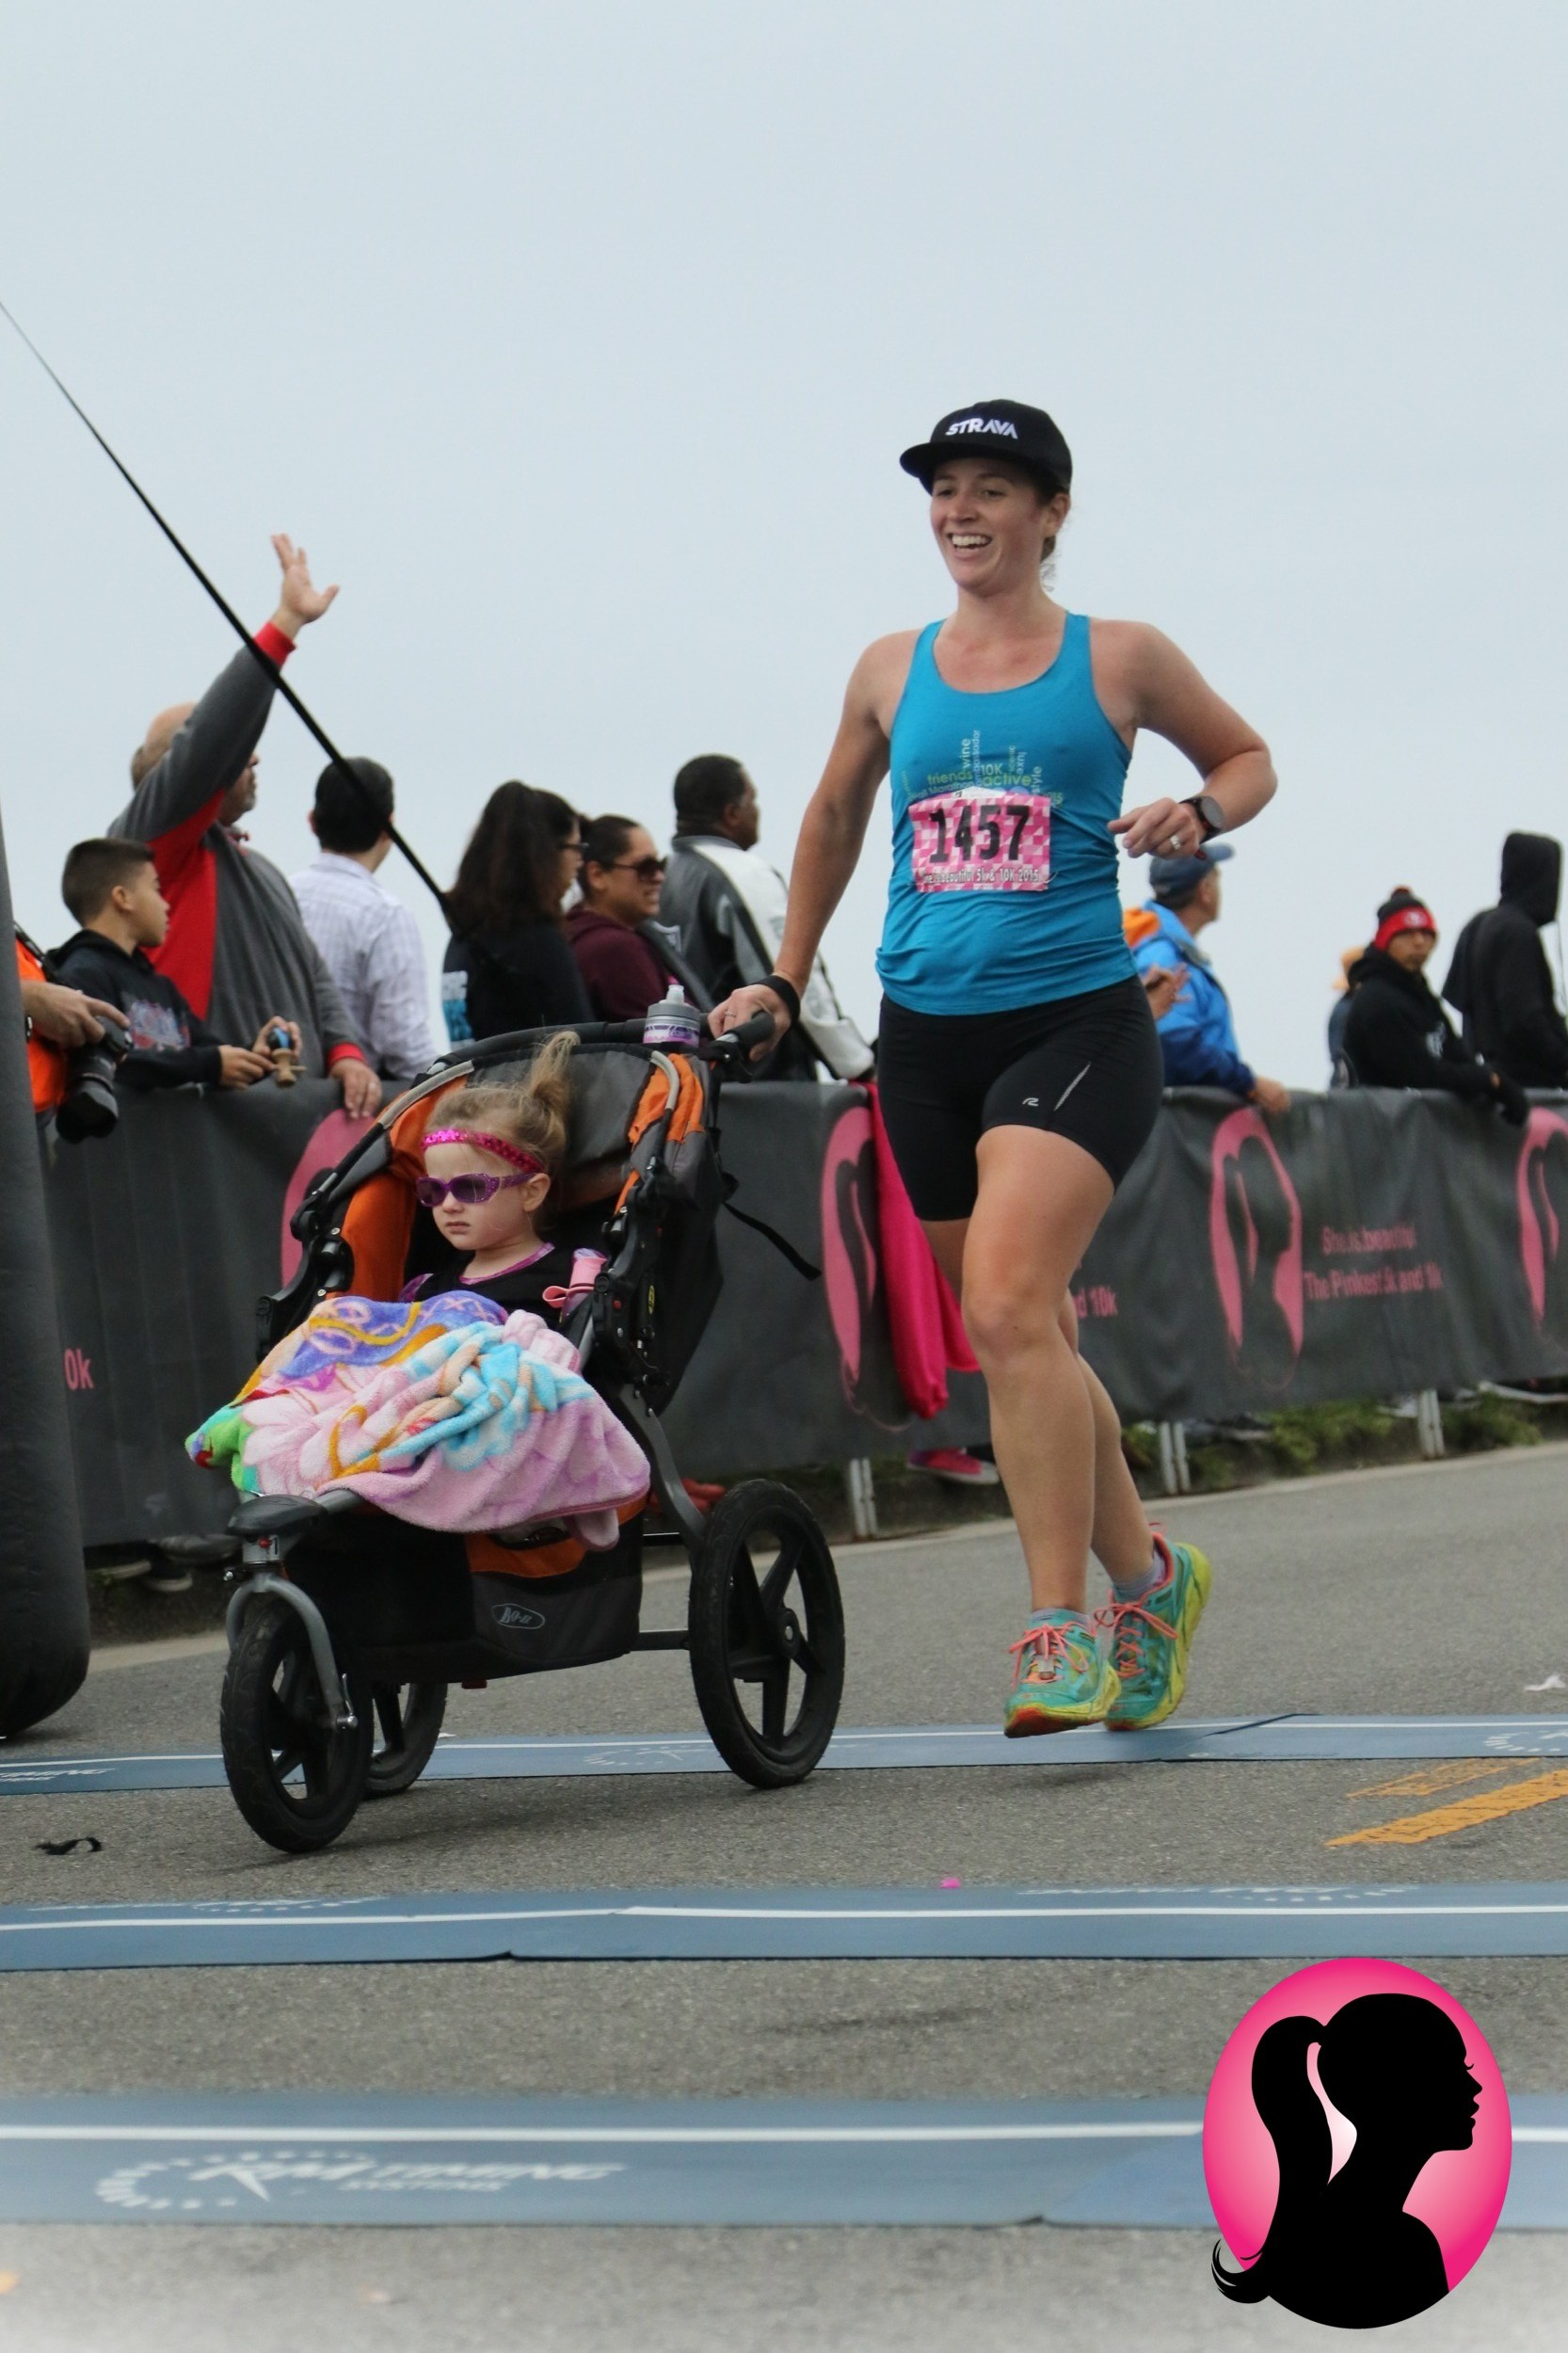 winning the 5k baby mama division (while pregnant) in 2015 at she.is.beautiful - Santa Cruz